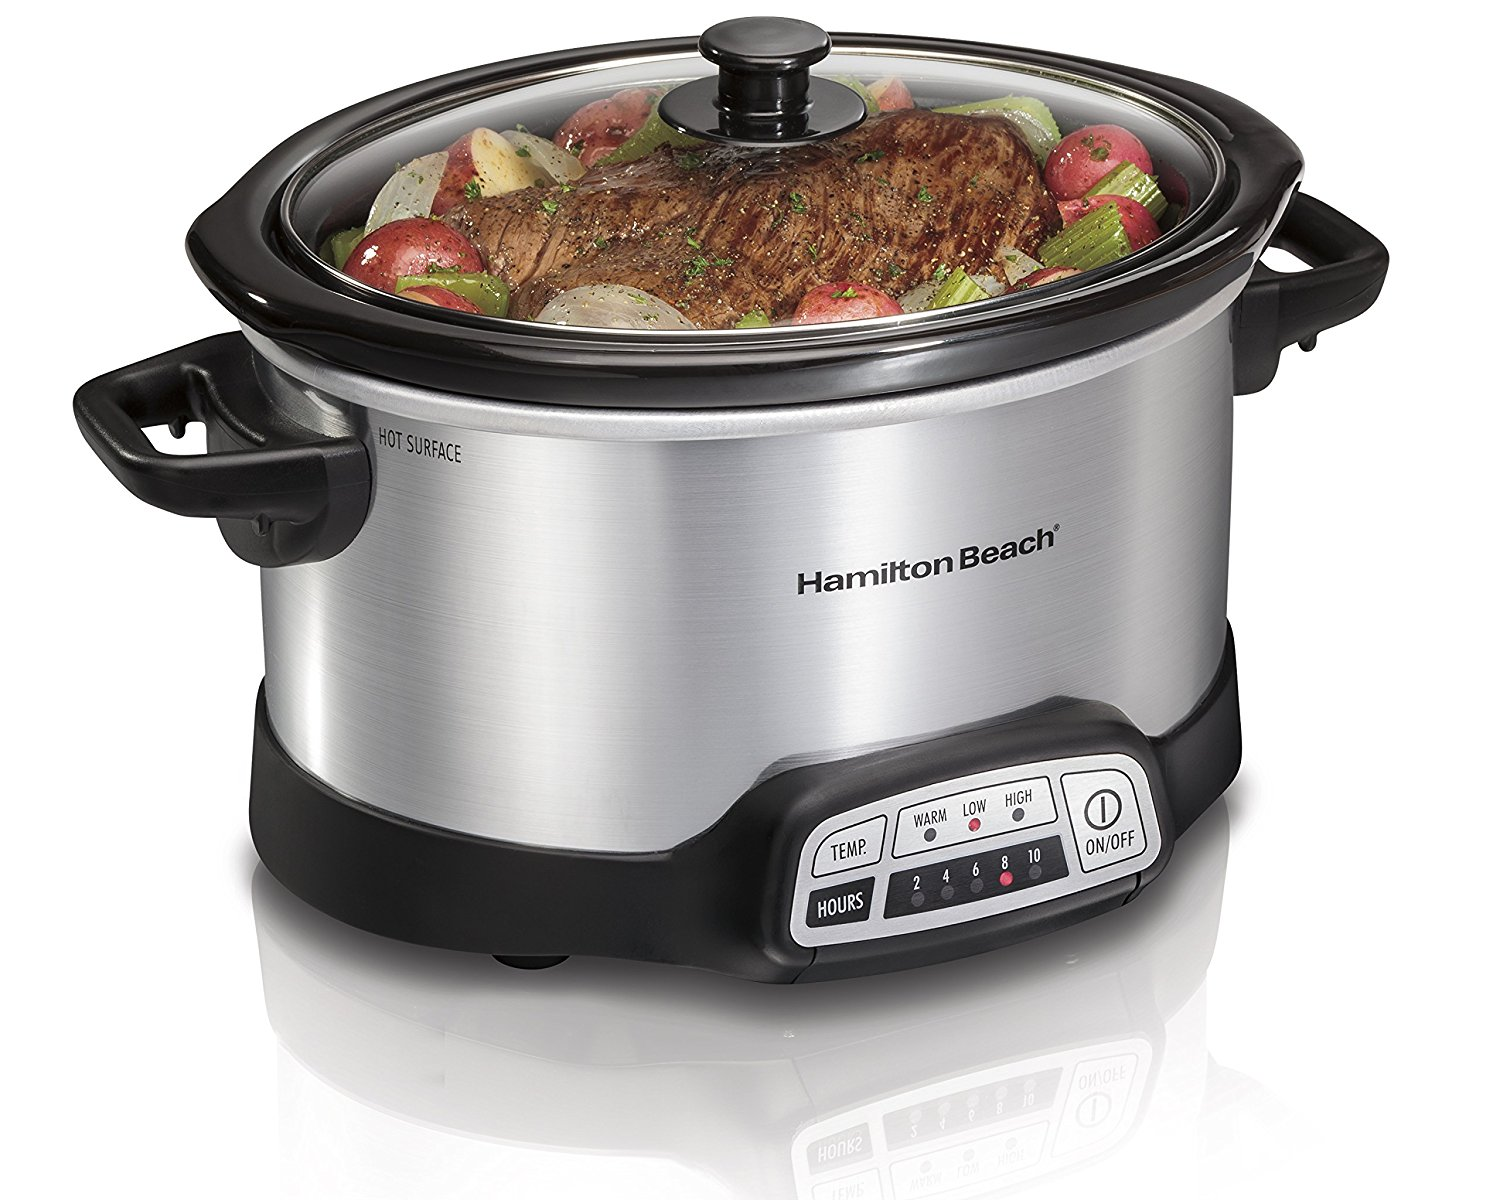 Hamilton Beach 4-Quart Programmable Slow Cooker